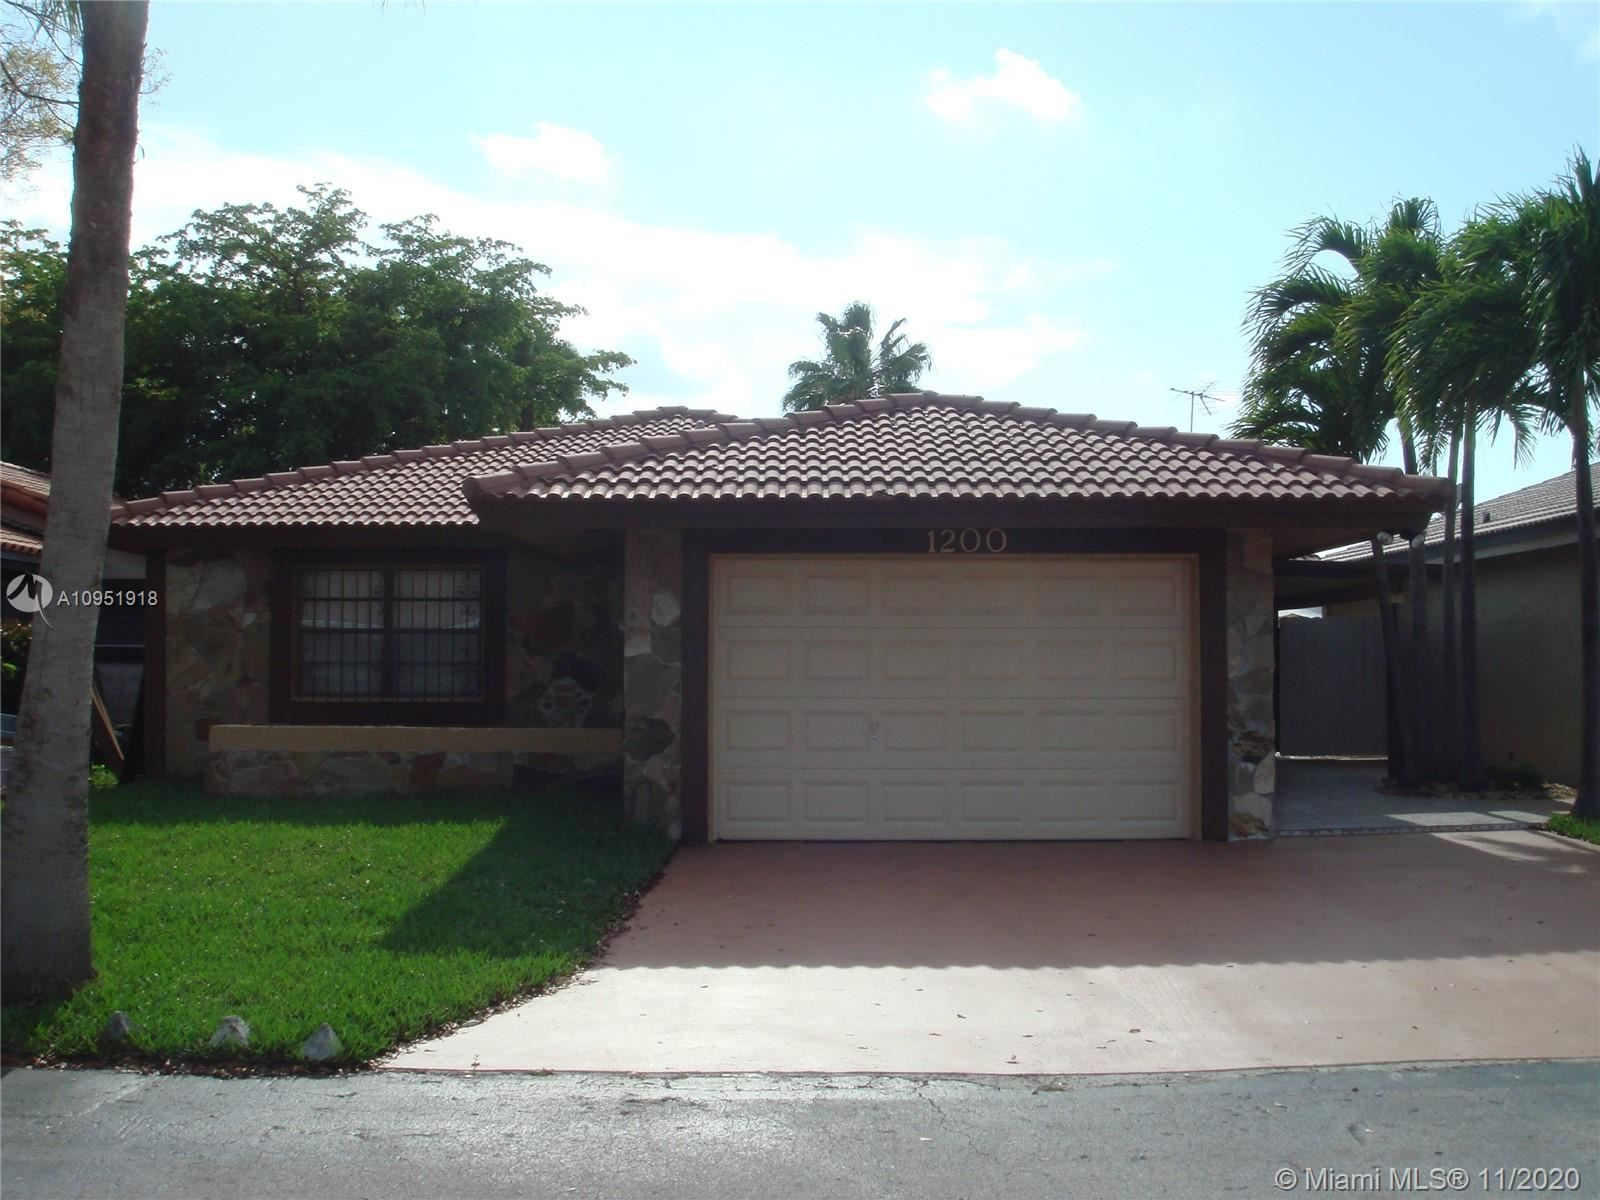 1200 SW 136th Pl, Miami, FL 33184 - #: A10951918